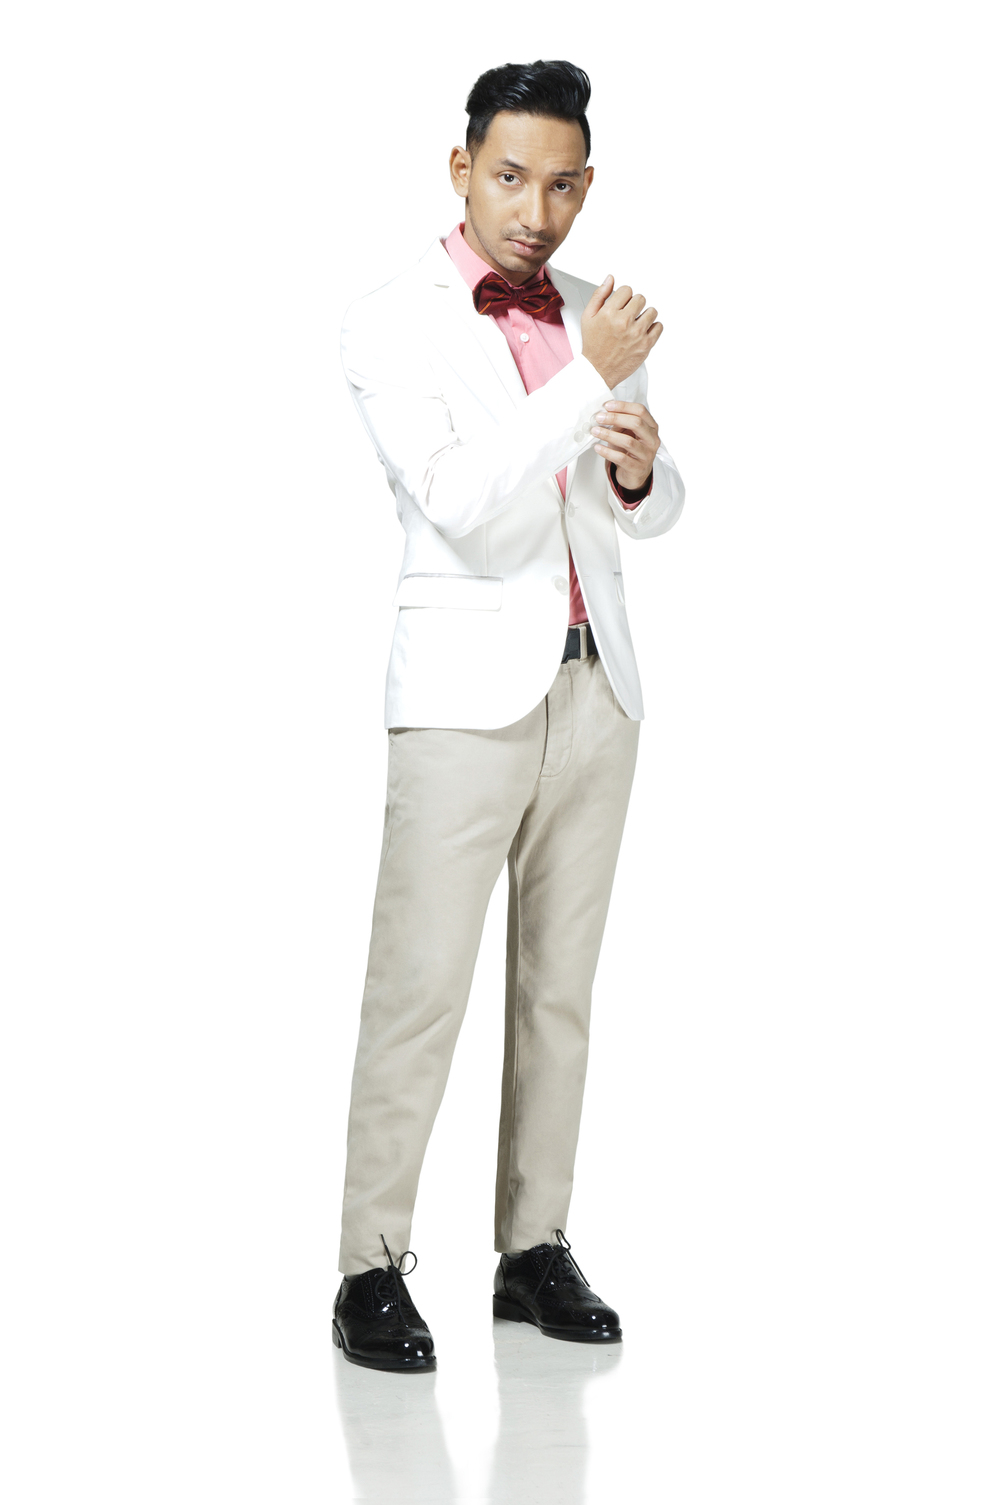 Zizan Razak, prominent local actor-cum-entertainer will be one of the new faces of 11street.